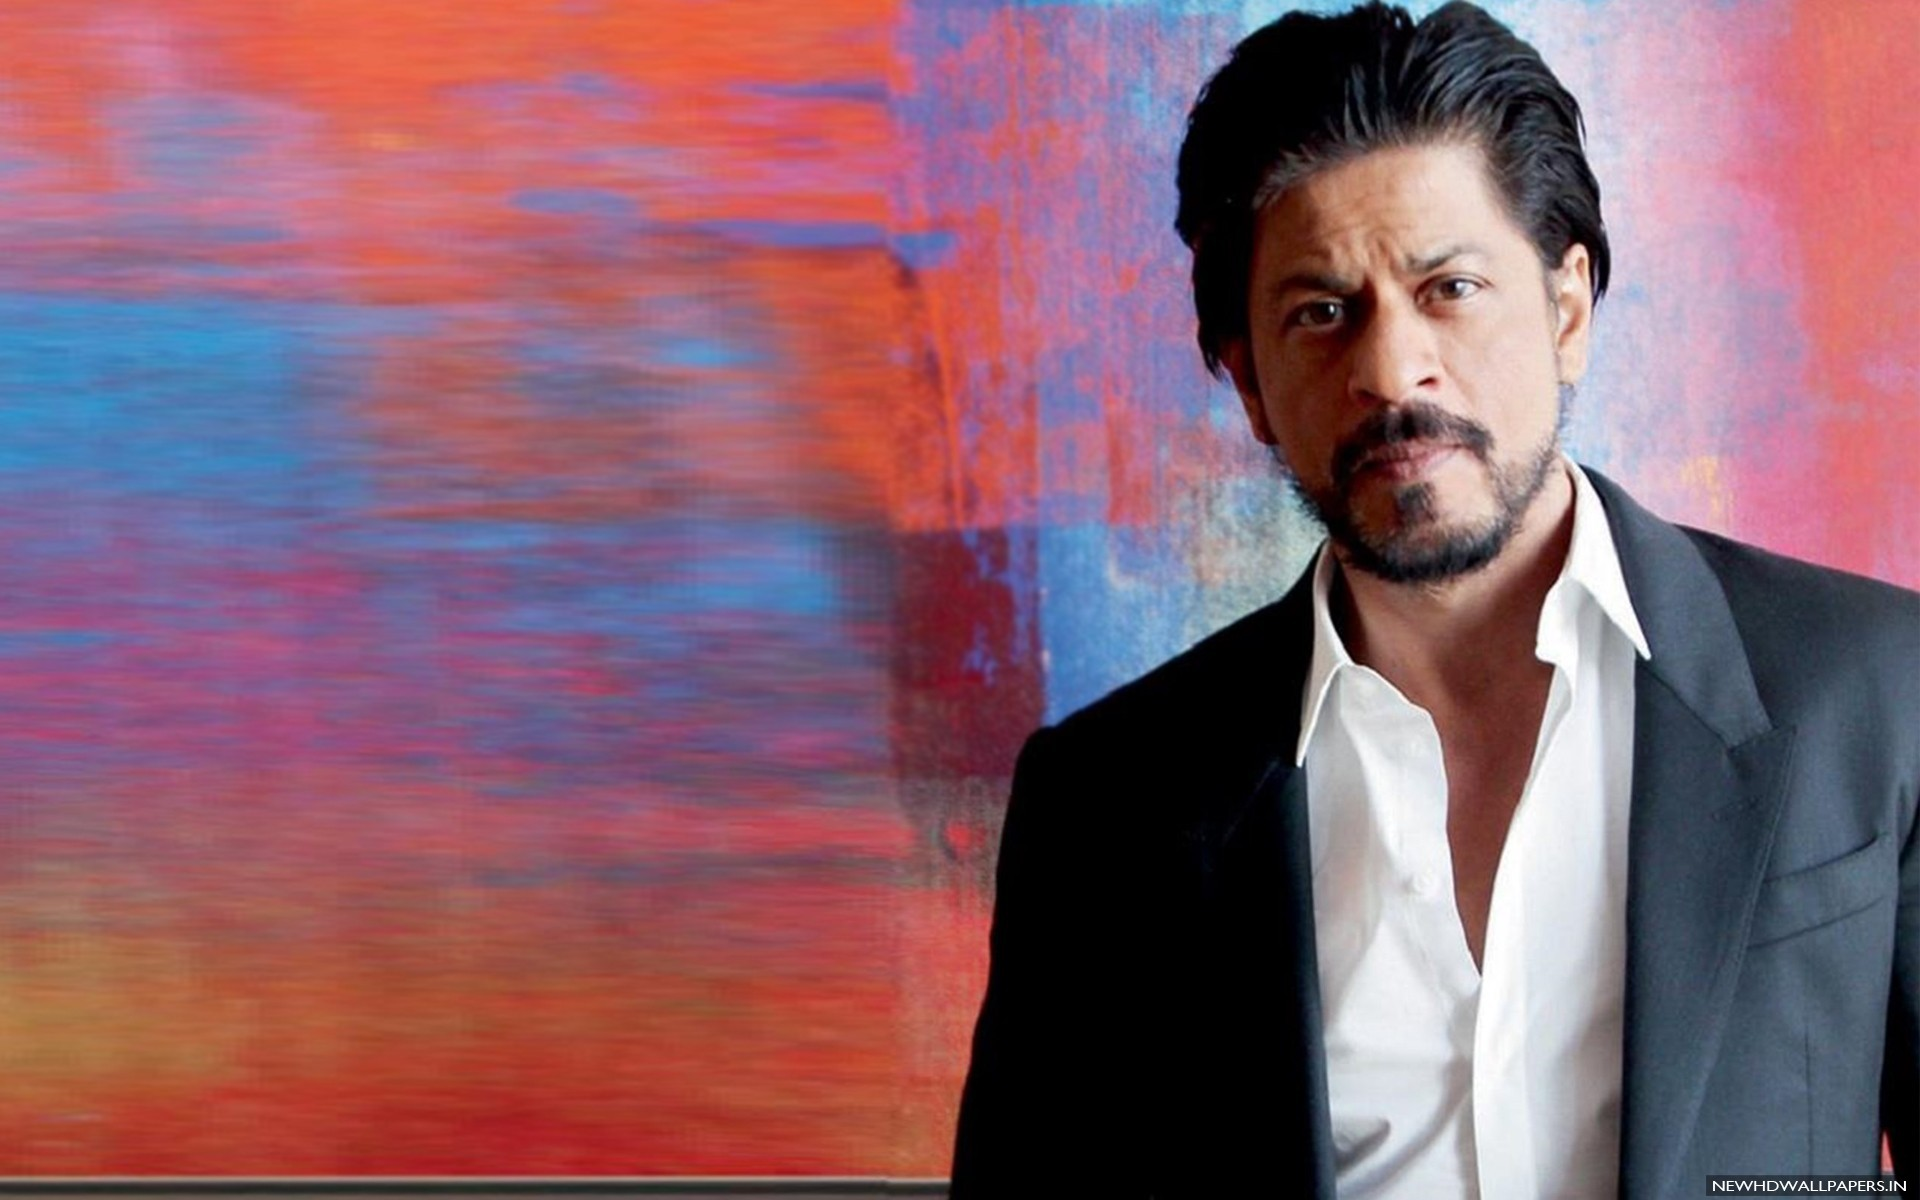 Shah Rukh Khan Wallpapers High Resolution And Quality Download